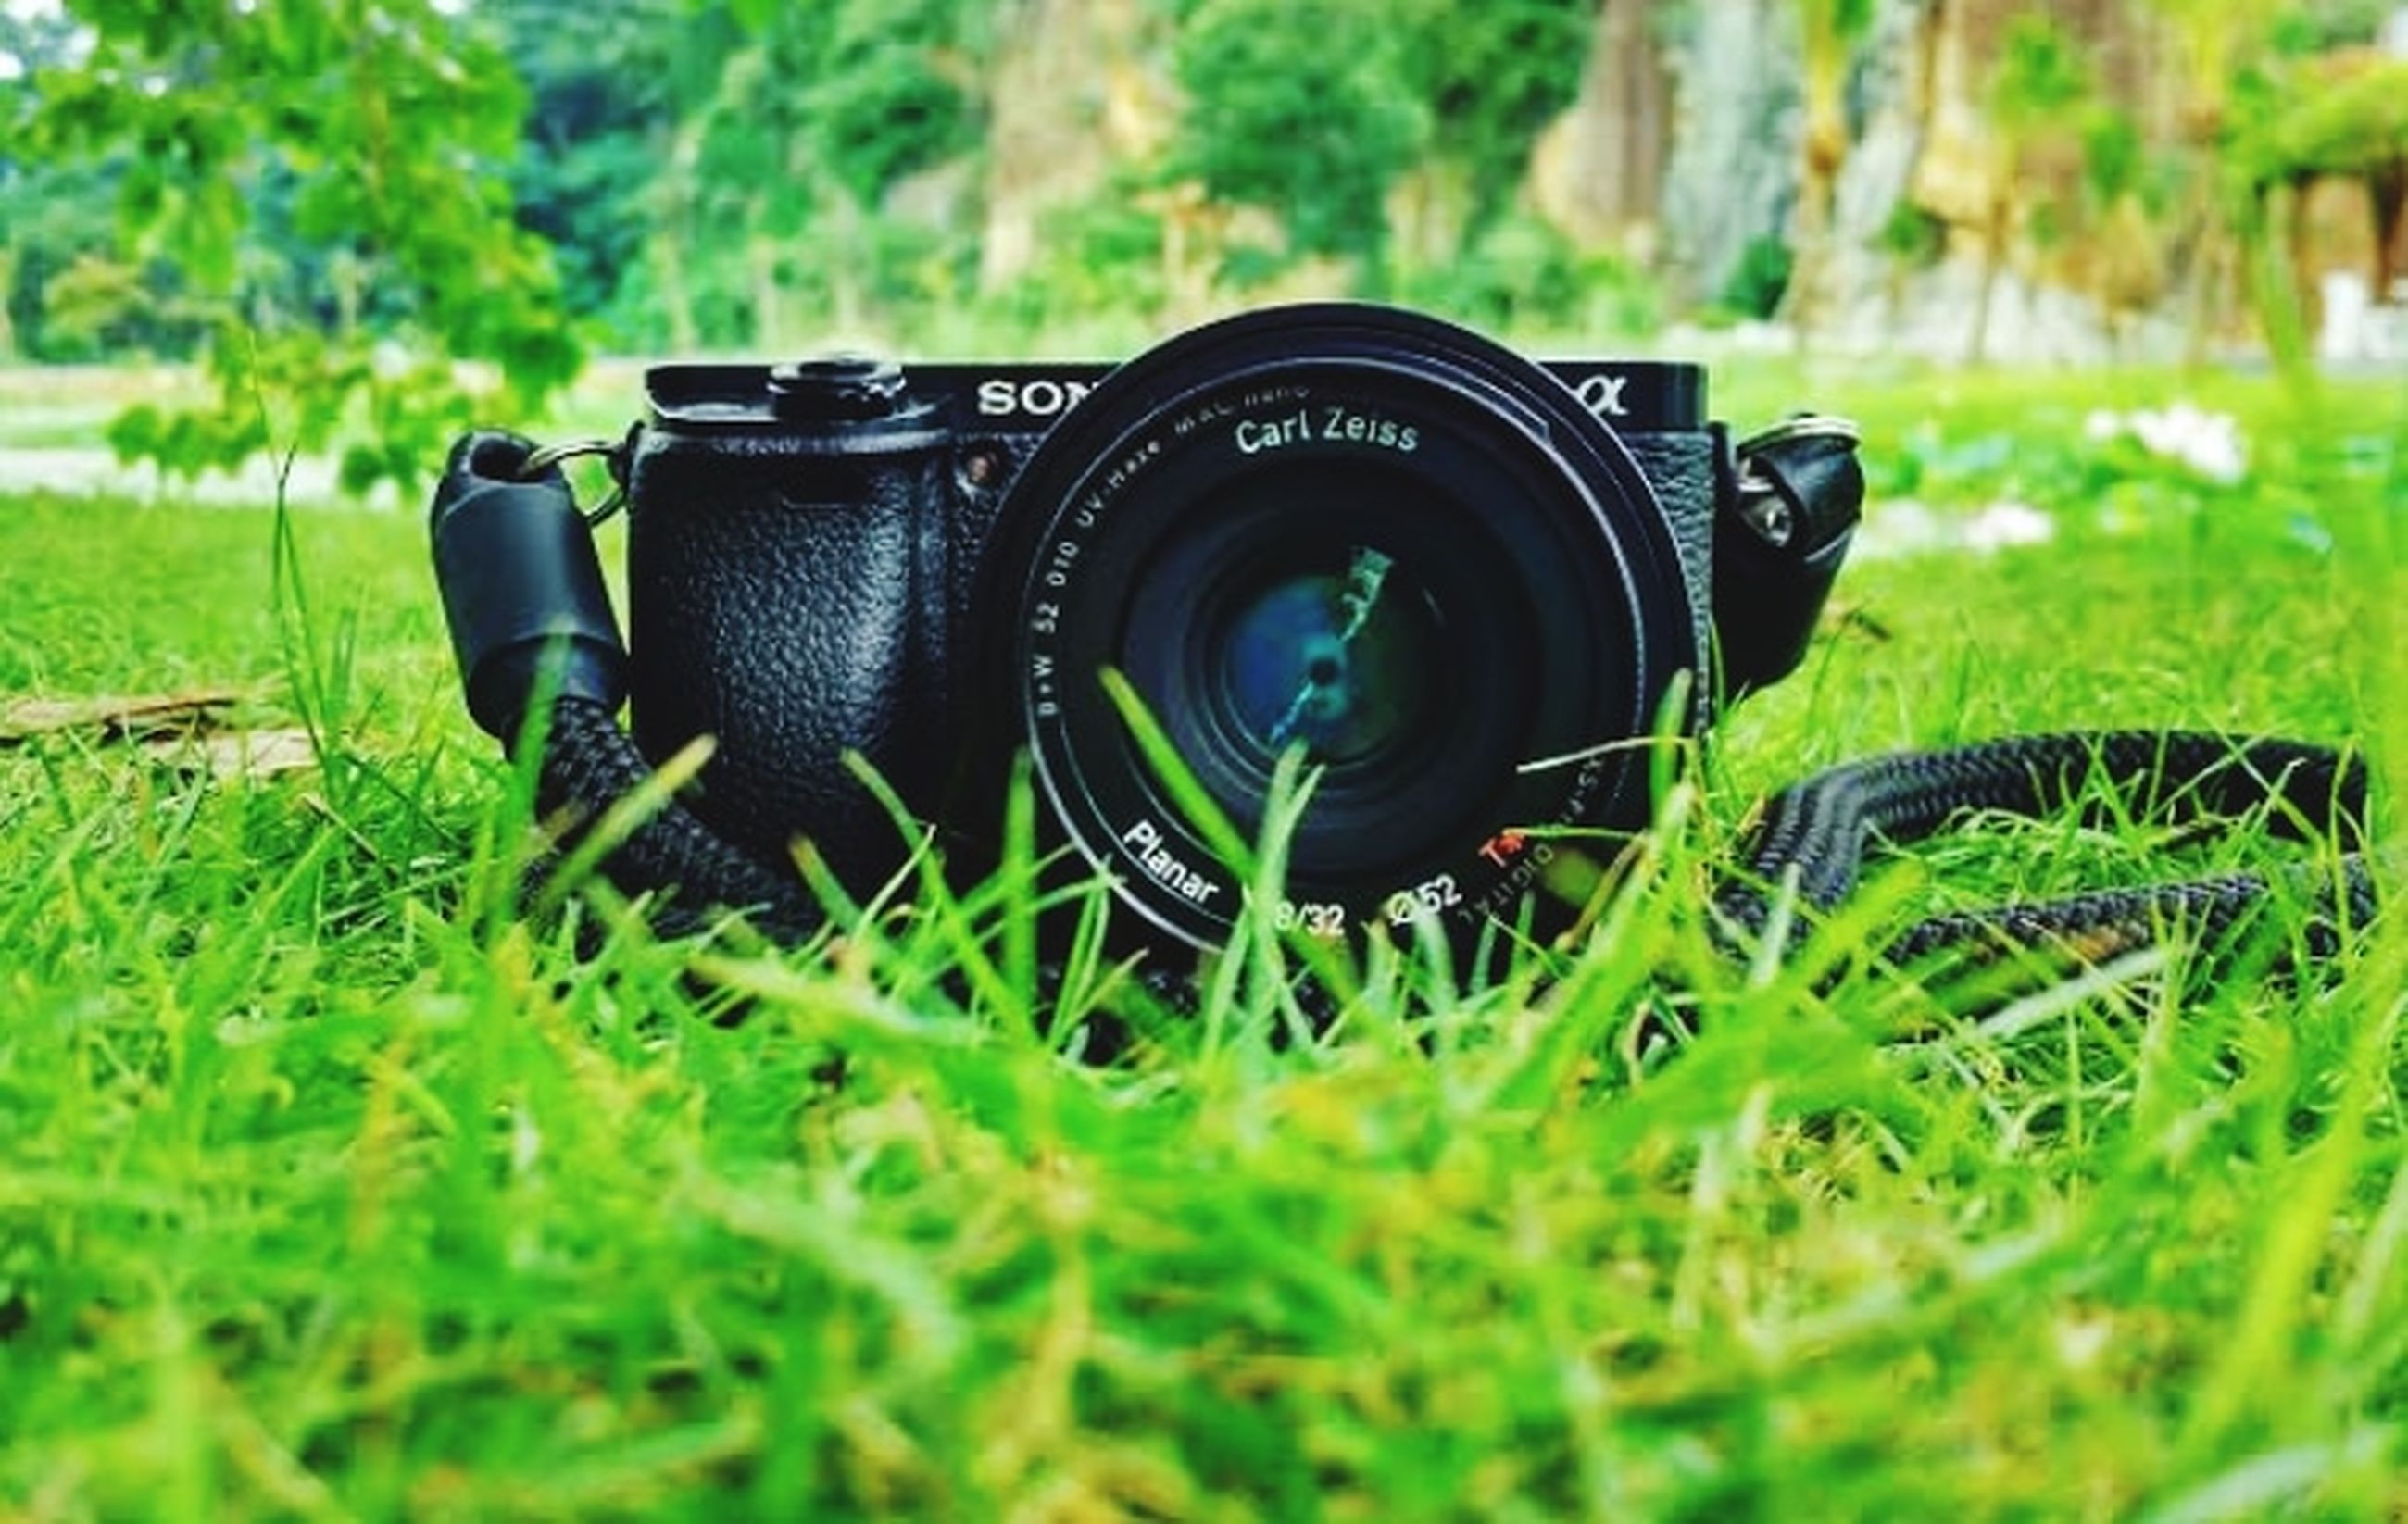 green, grass, plant, camera, technology, lawn, photographic equipment, lens - optical instrument, field, land, day, selective focus, nature, no people, close-up, photographing, activity, growth, lens - eye, outdoors, digital slr, equipment